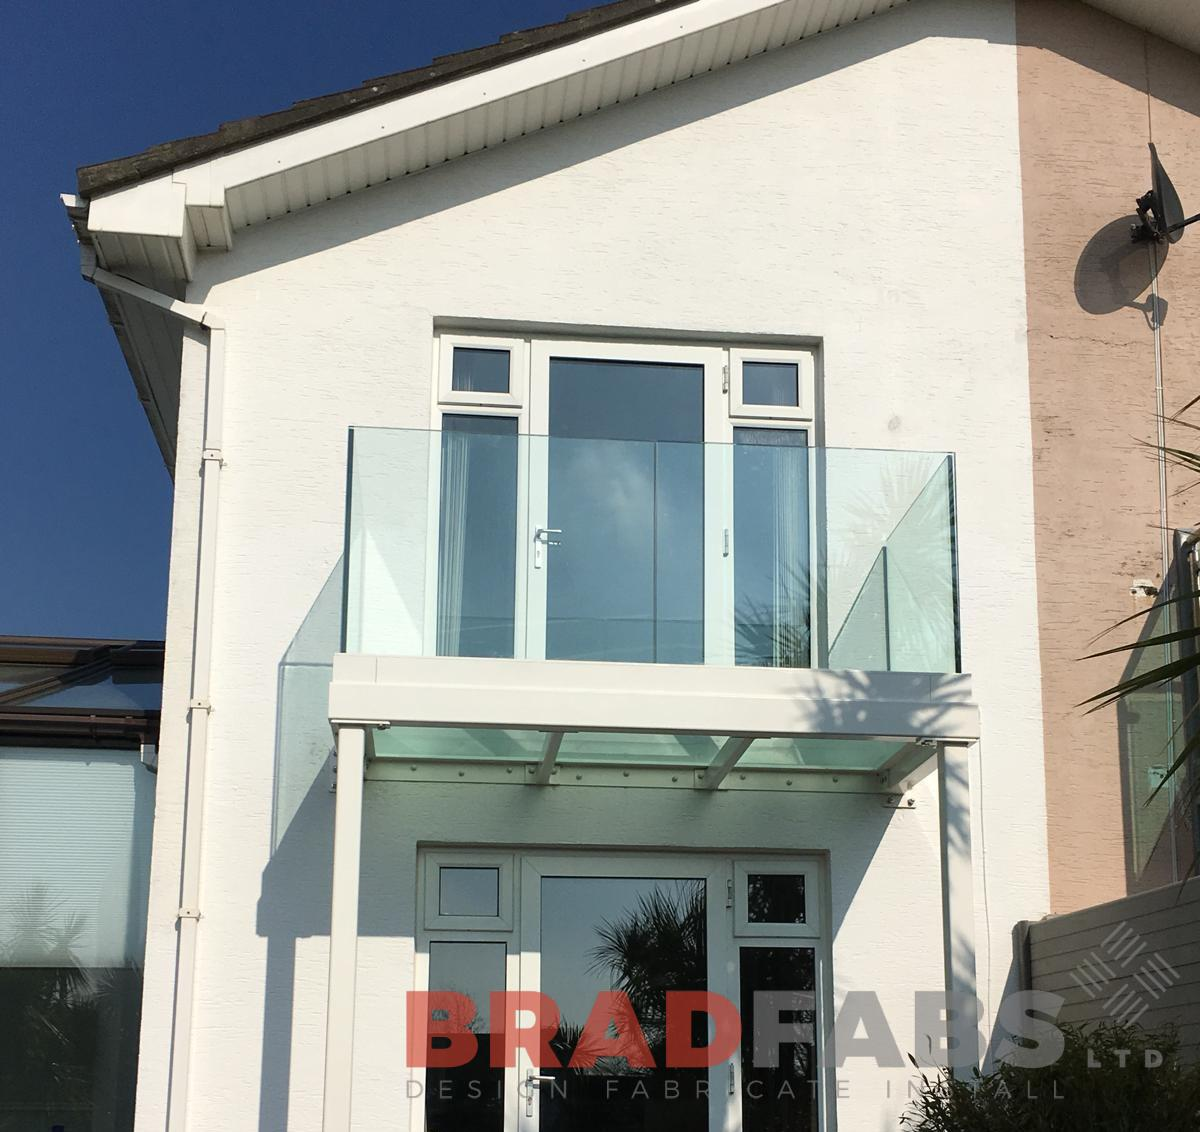 Stunning bespoke balcony with glass floor designed, manufactured and installed by Bradfabs